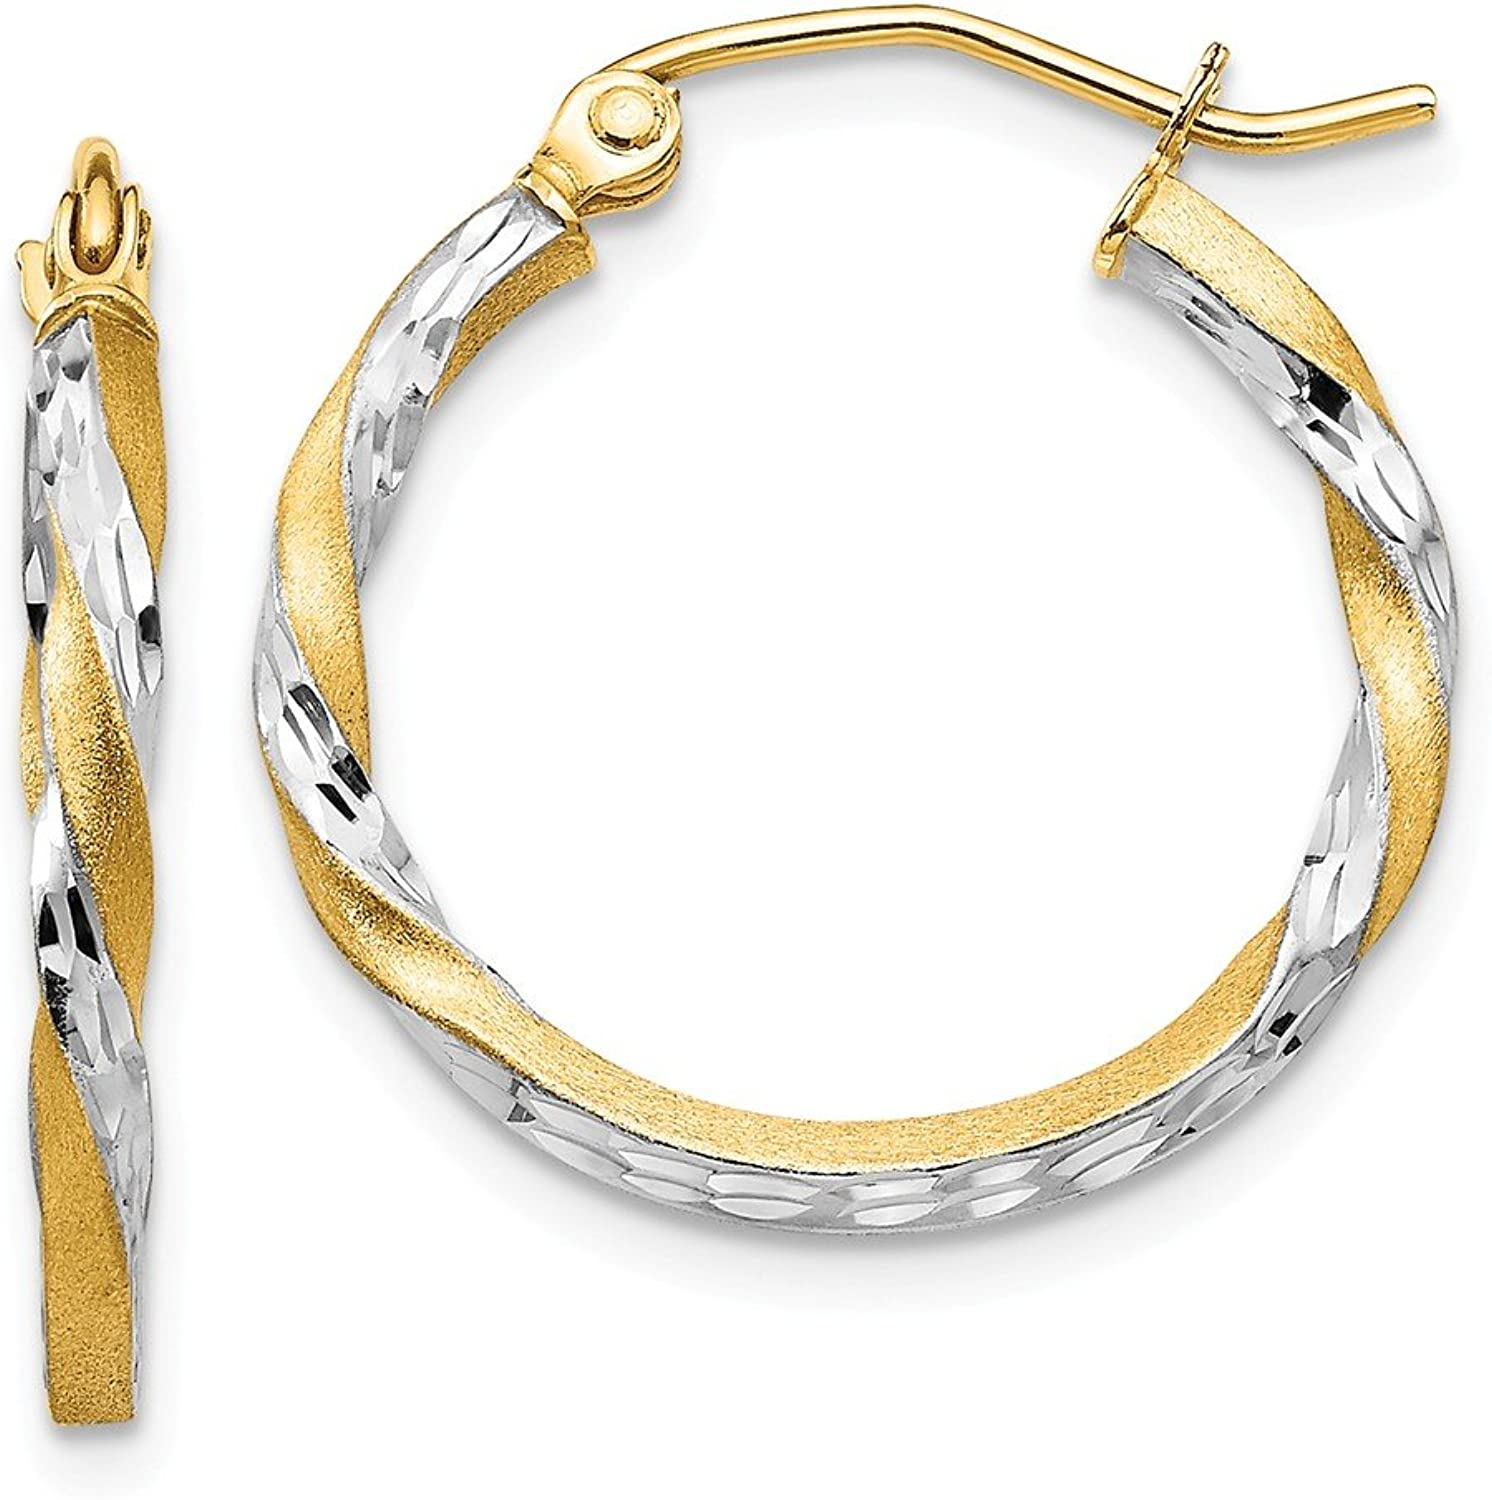 Beautiful rhodium plated gold and silver 14K rhodiumplatedgoldandsilver 14k & Rhodium Satin Diamond Cut Twisted Hoop Earrings